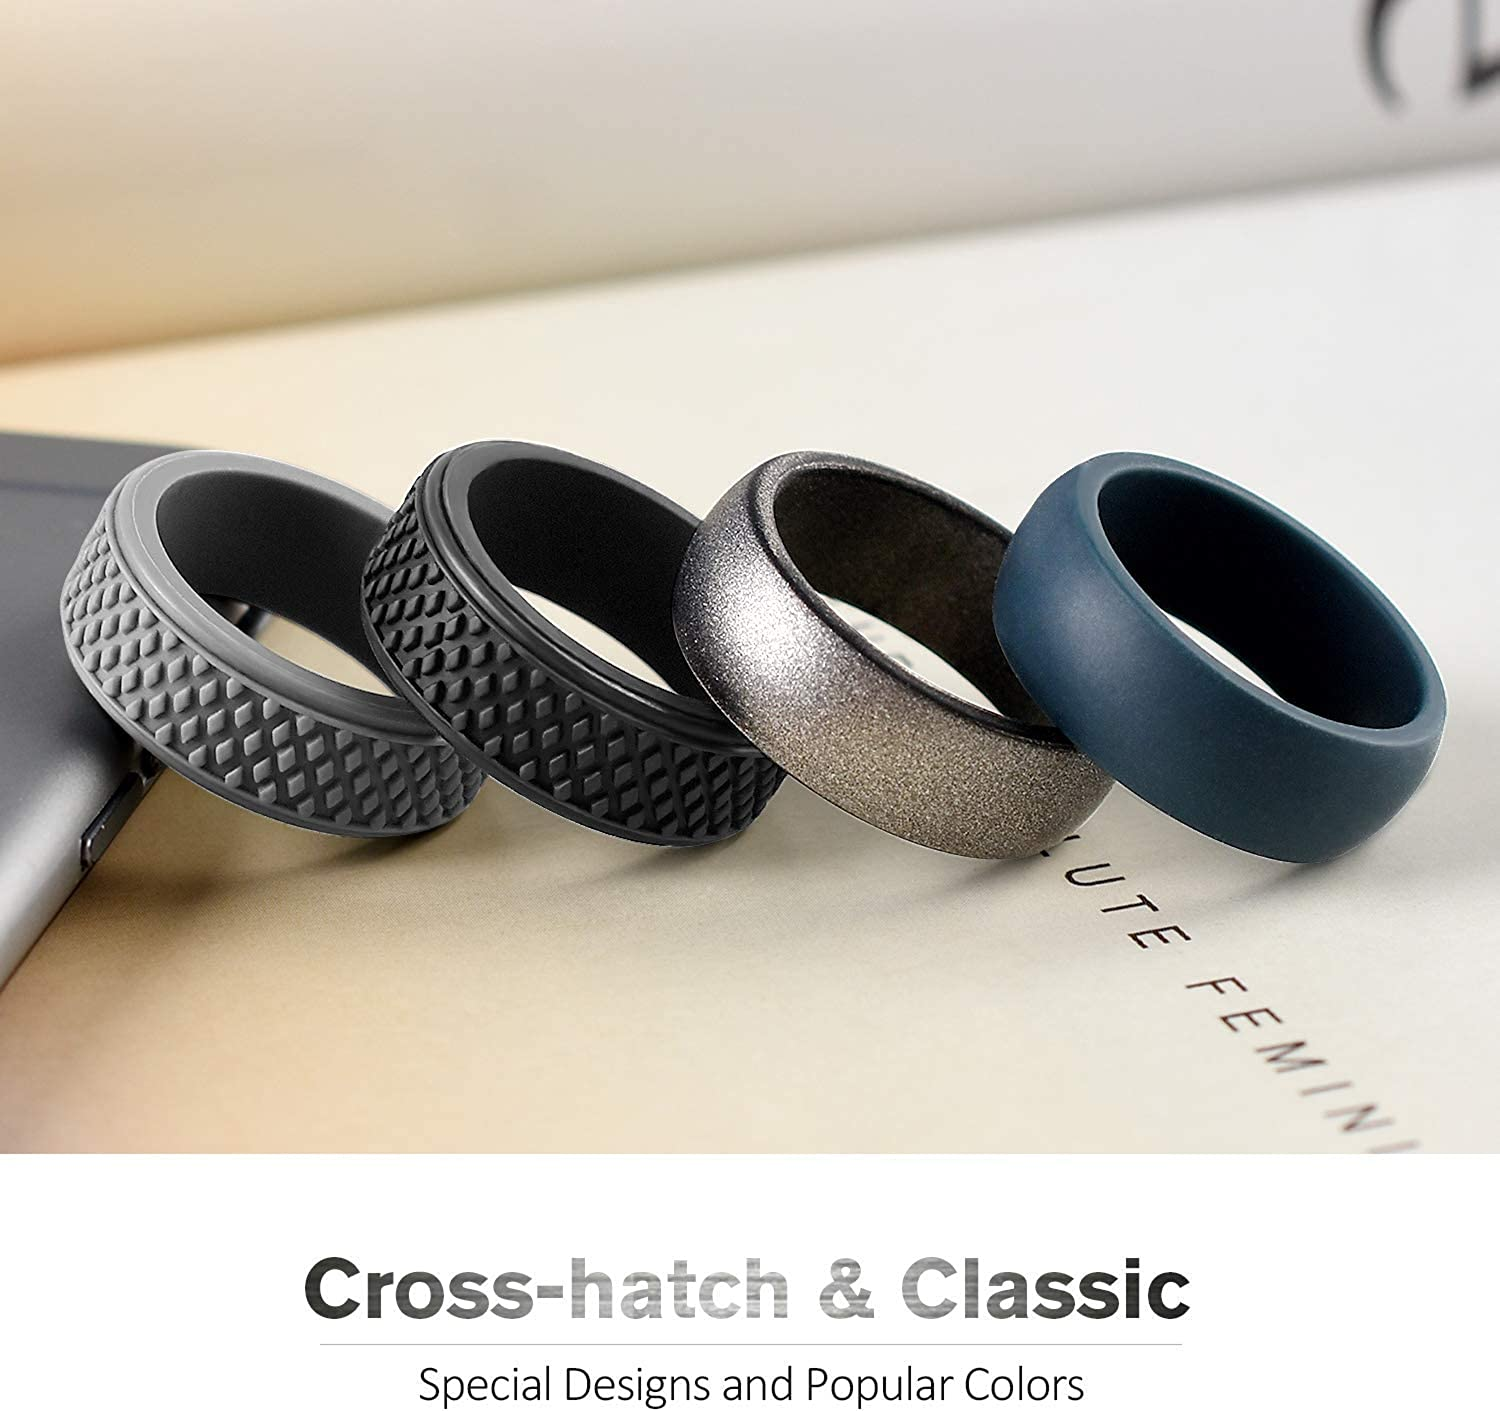 Affordable Rubber Wedding Bands for Gym Sports Leisure Work Silicone Wedding Ring for Men Classic /& Crosshatch Rings